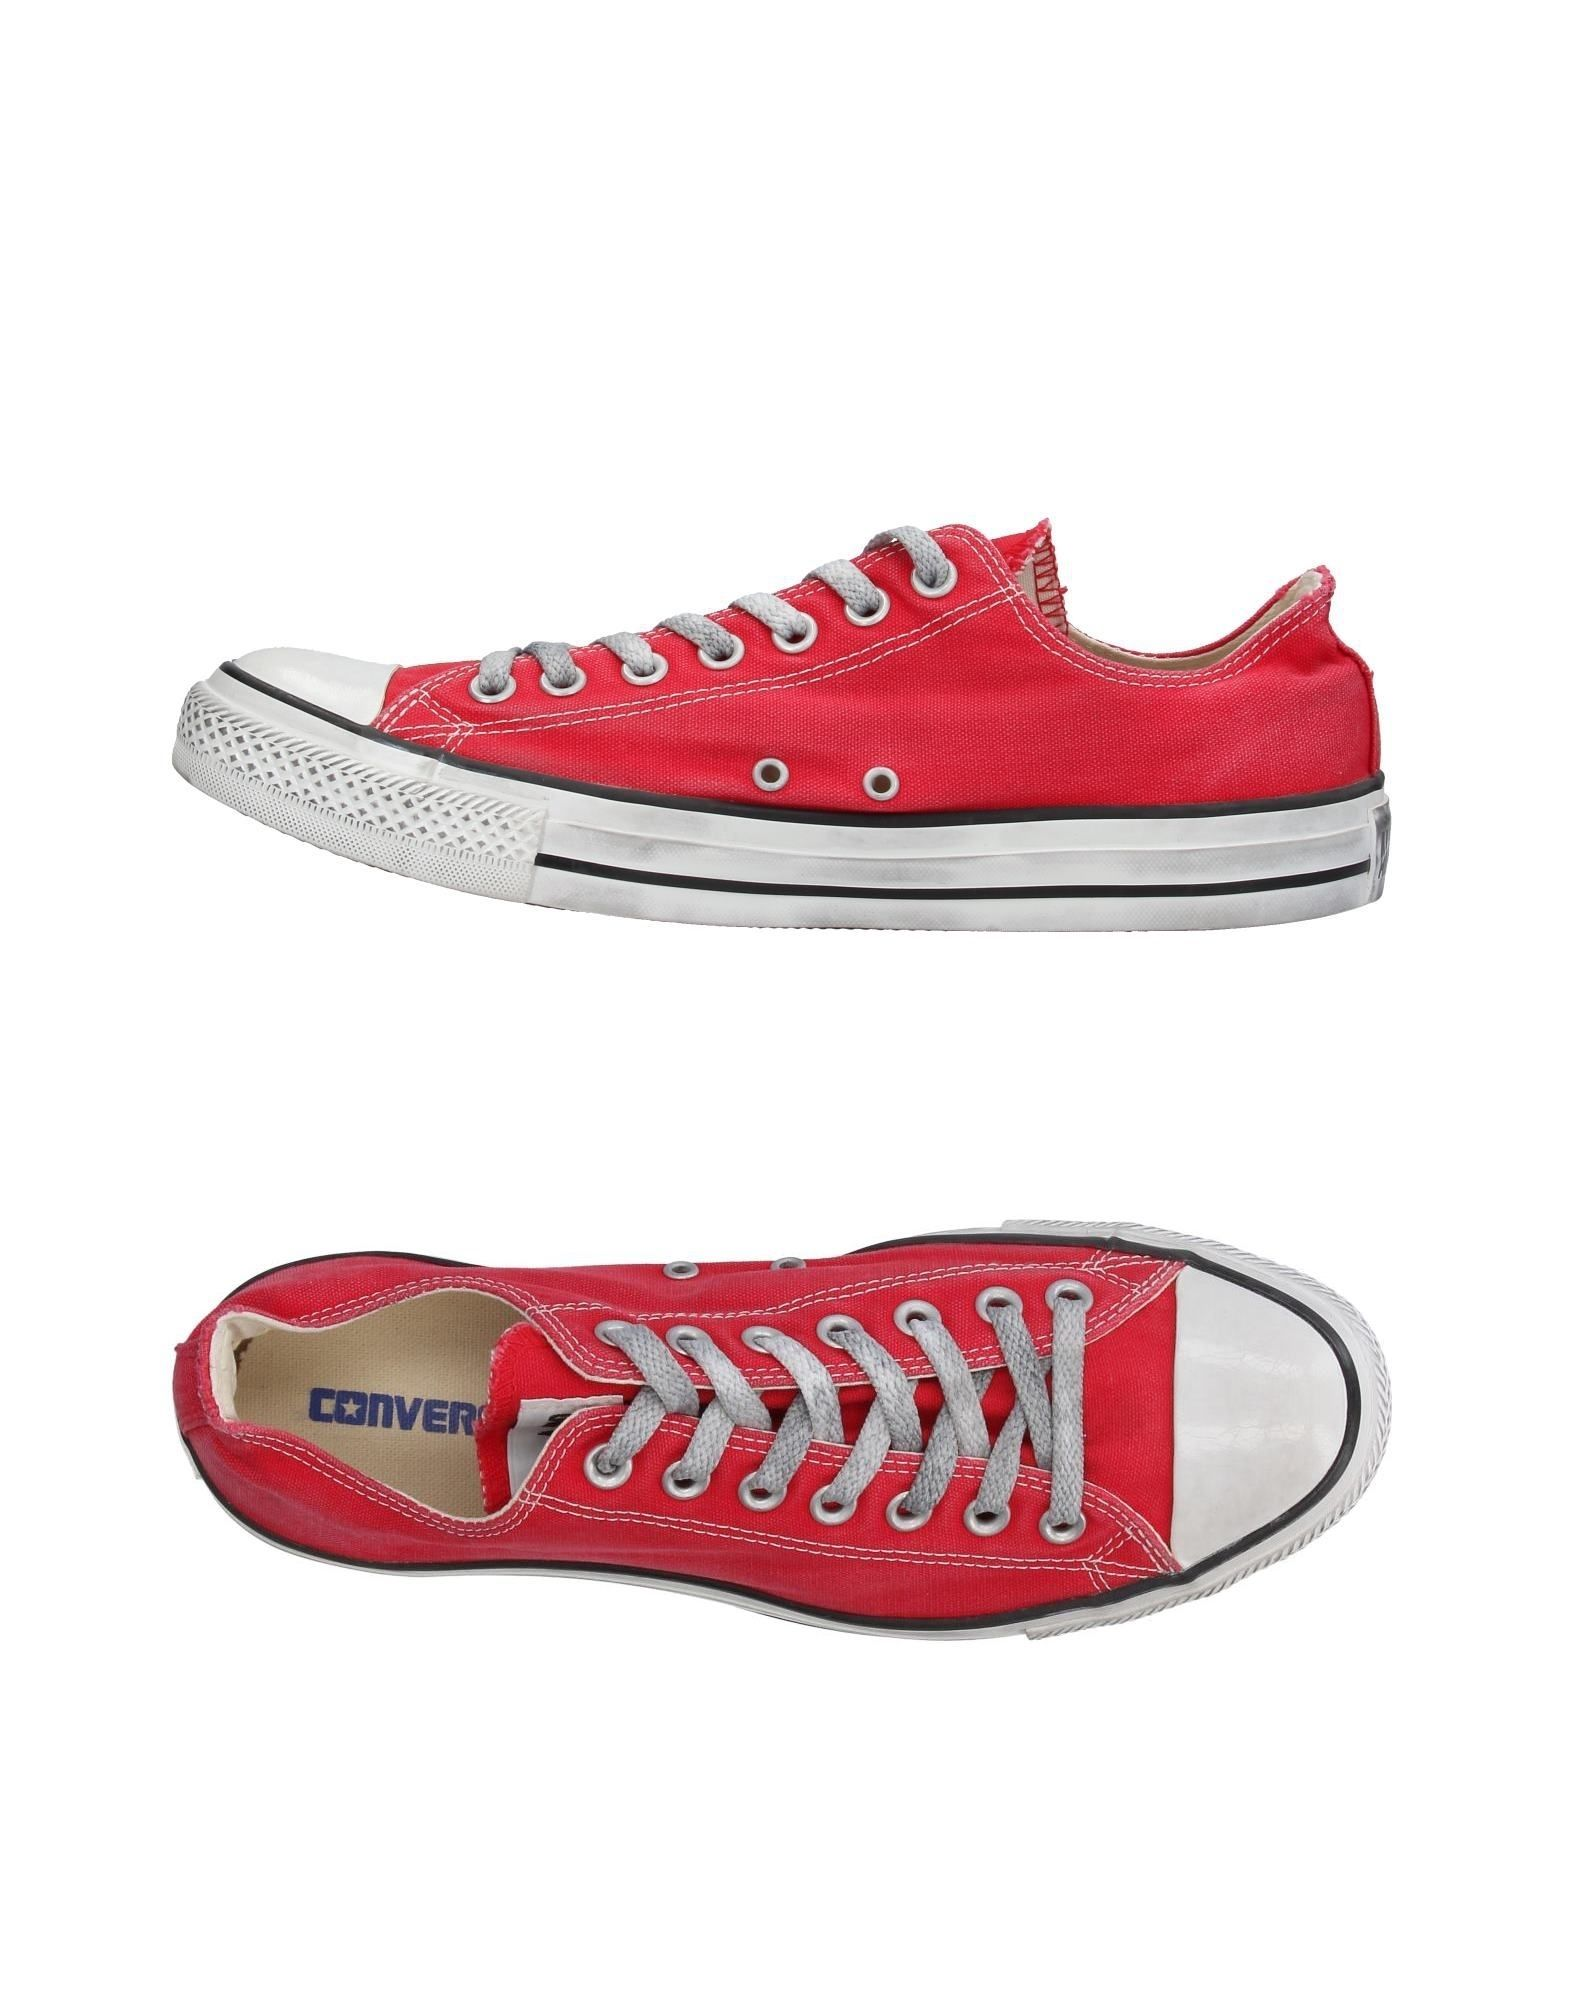 Sneakers Converse Limited Edition Homme - Sneakers Converse Limited Edition sur